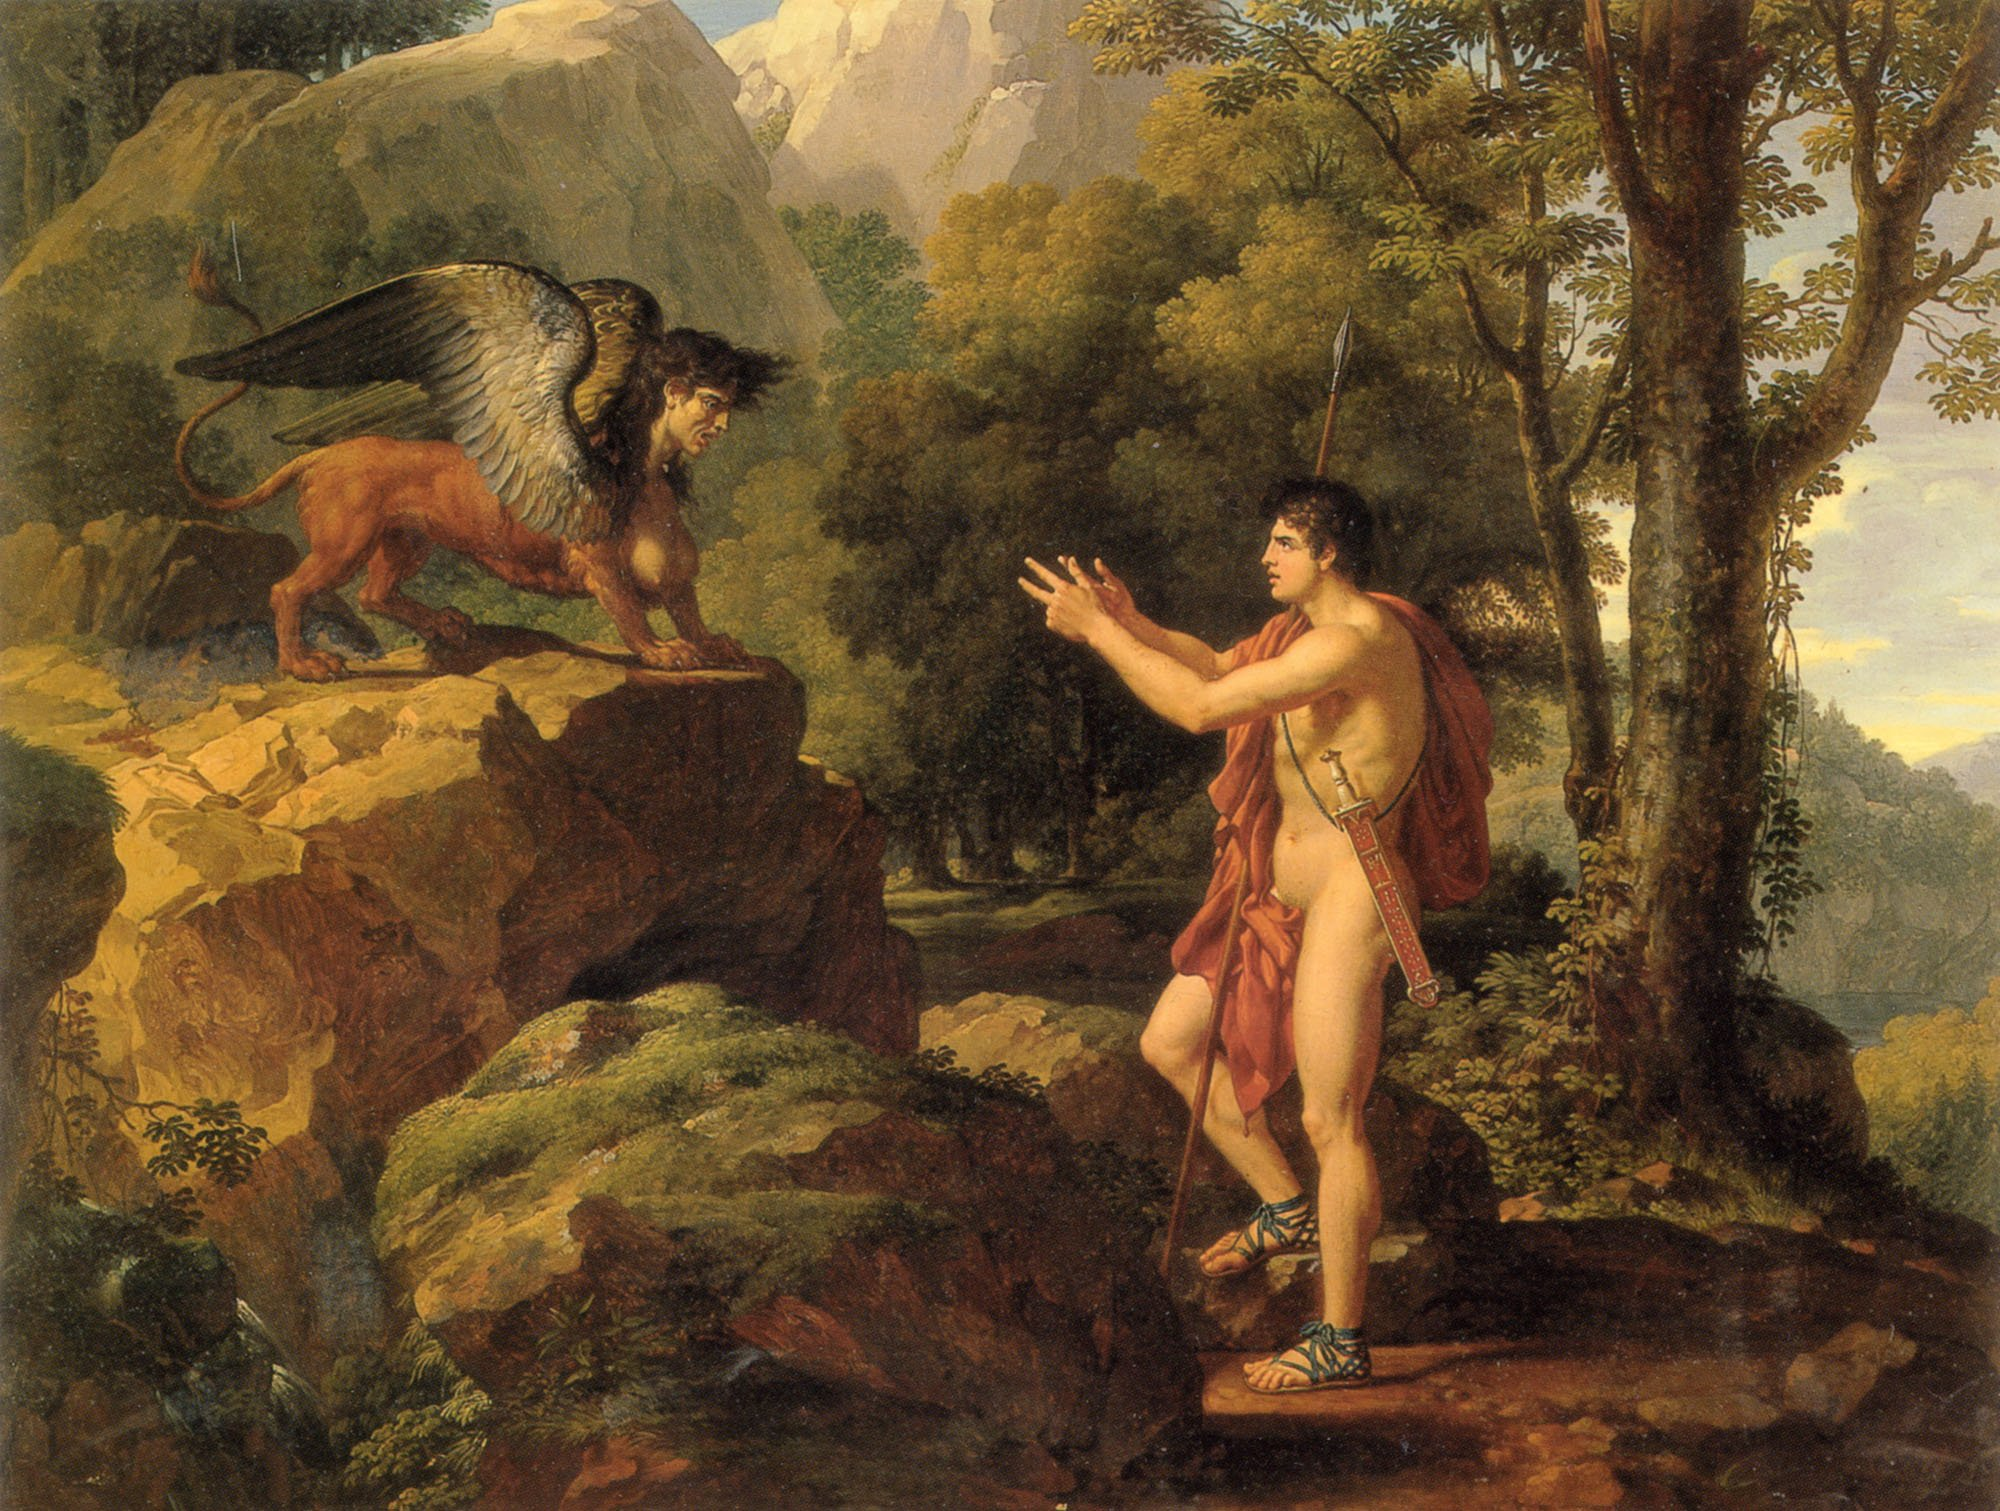 Oedipus-and-the-Sphinx-Francois-Xavier-Fabre-Oil-Painting-1